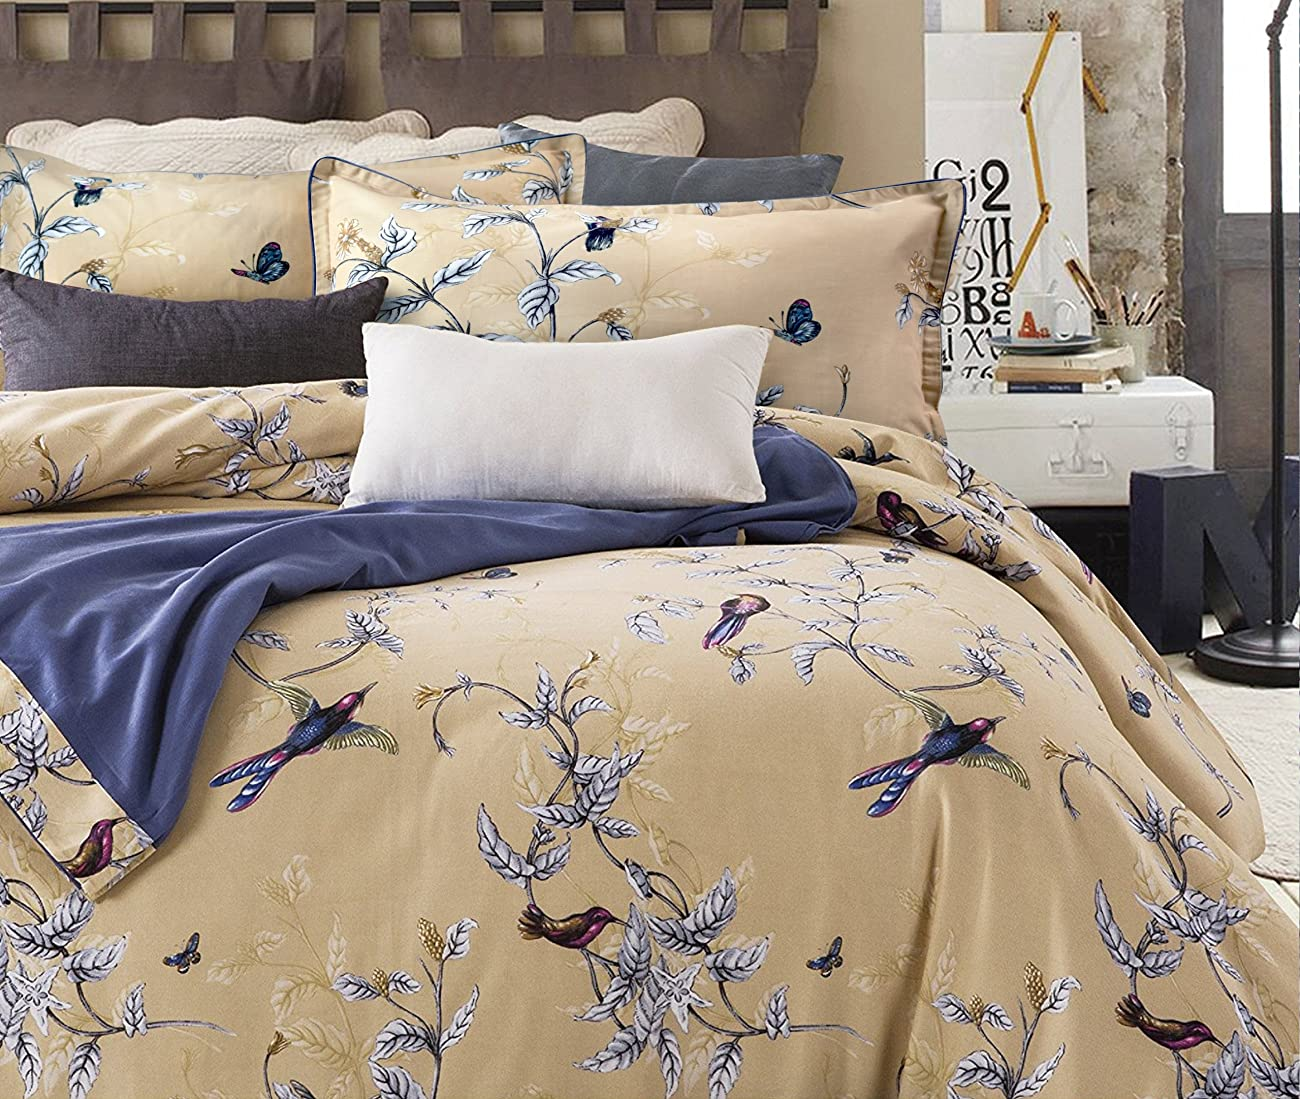 Luxury Jacobean Floral Garden 3 Piece Duvet Cover Set Beige Blue English Vintage Floral Pattern 100-percent brushed Cotton Twill (Full/Queen) 0